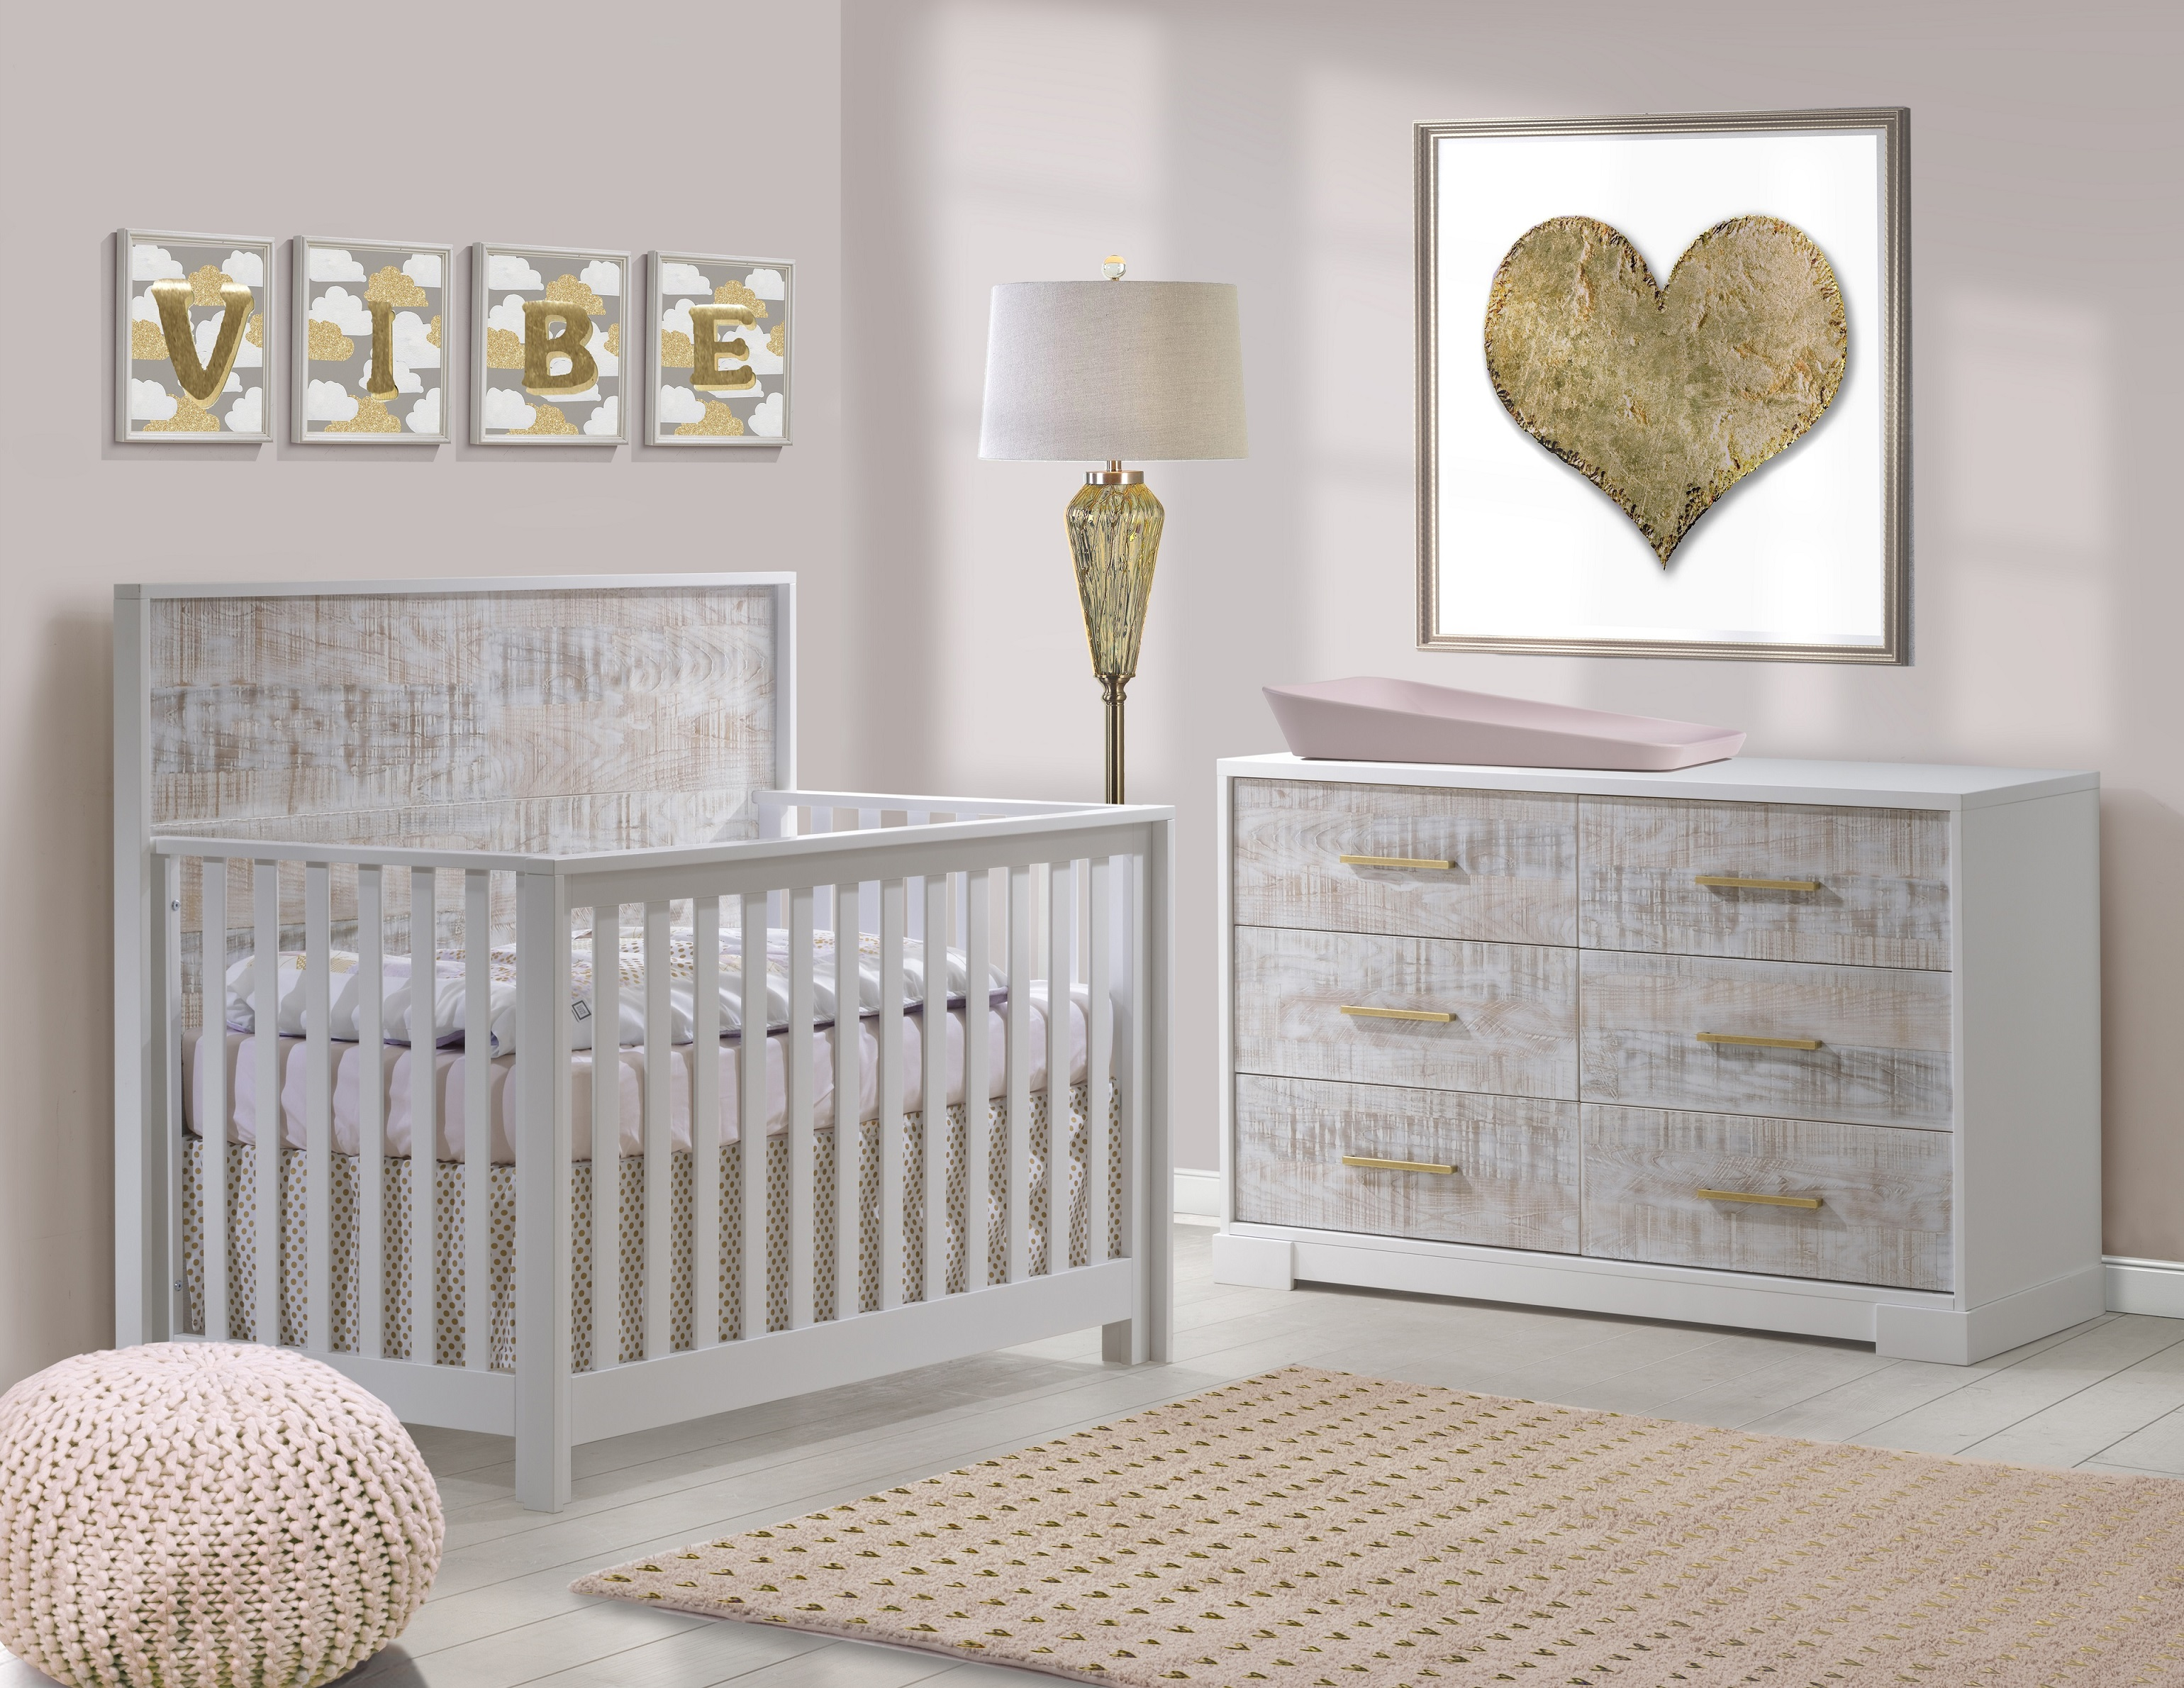 wool nursery bear babys mini feather for choosing a sheets with baby art bed radle crib make ideas area trendy pretty drawer cribs changing bookshelf rug hanging teddy toys best stuff your wall tables drawers blanket spectacular